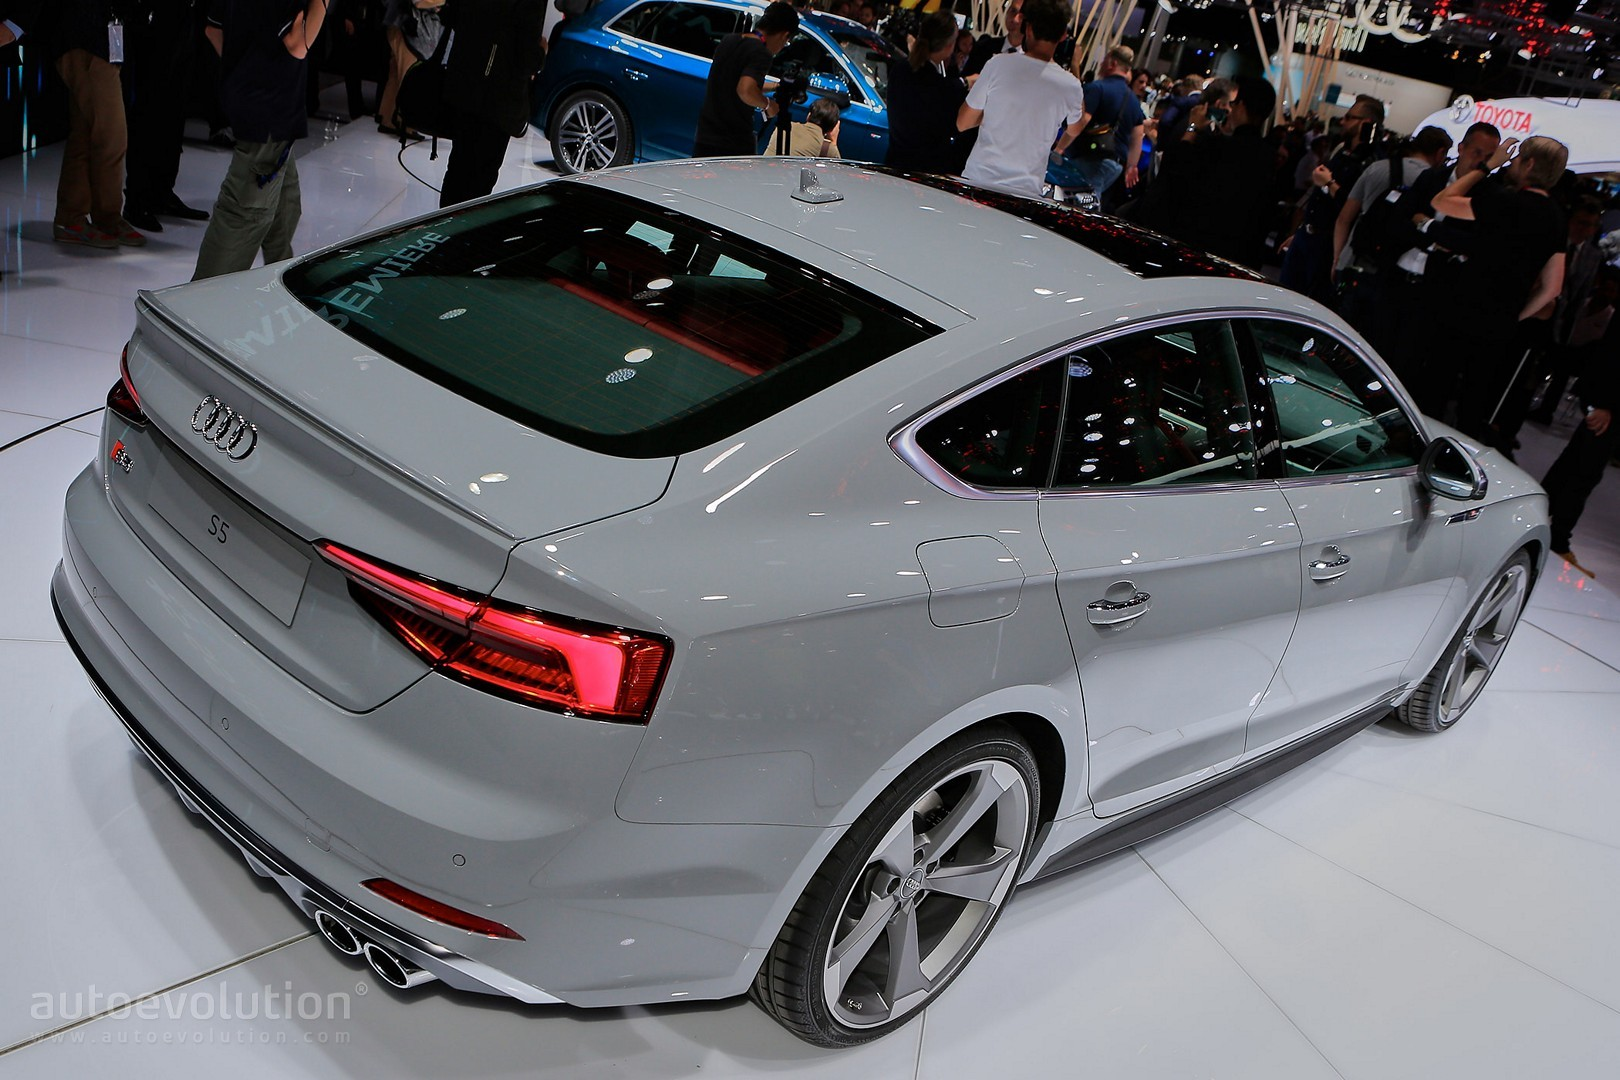 2016 Audi Q5 >> 2017 Audi S5 Sportback Looks Like a Shark Thanks to Nardo Gray Paint - autoevolution